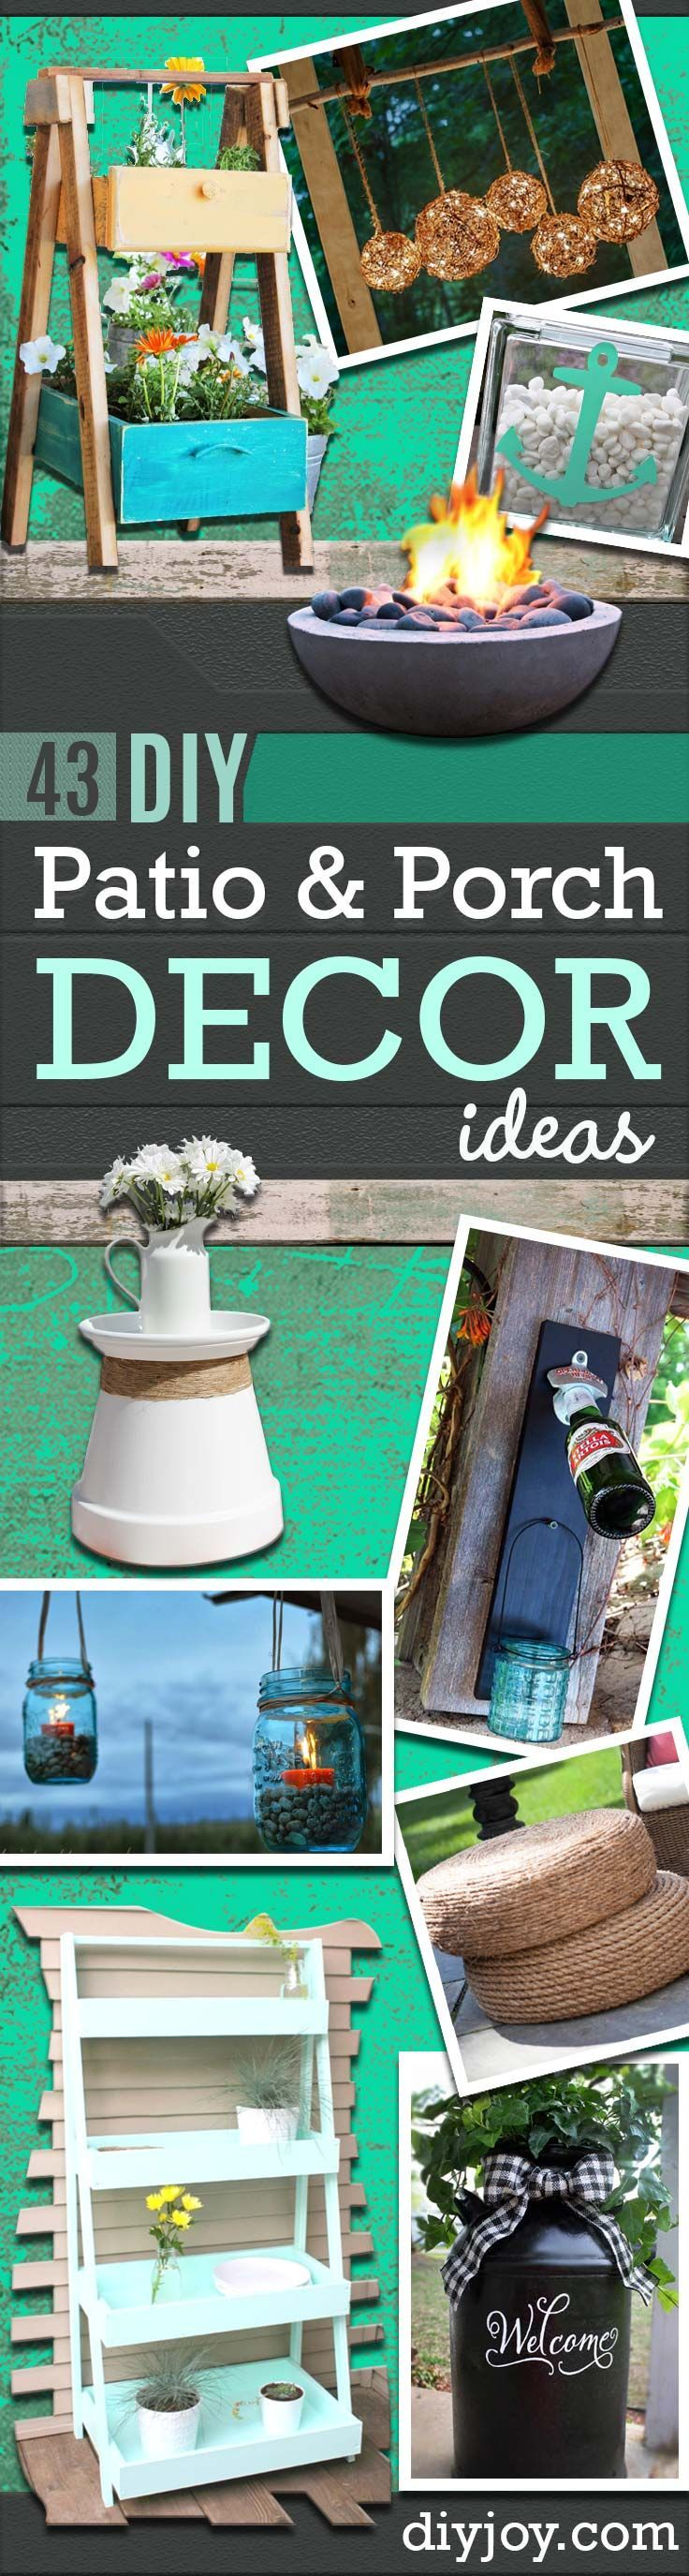 Outdoor Decorating Gardening Diy Porch And Patio Ideas Decor Projects And Furniture Tutorials You Can Build Decor Object Your Daily Dose Of Best Home Decorating Ideas Interior Design Inspiration